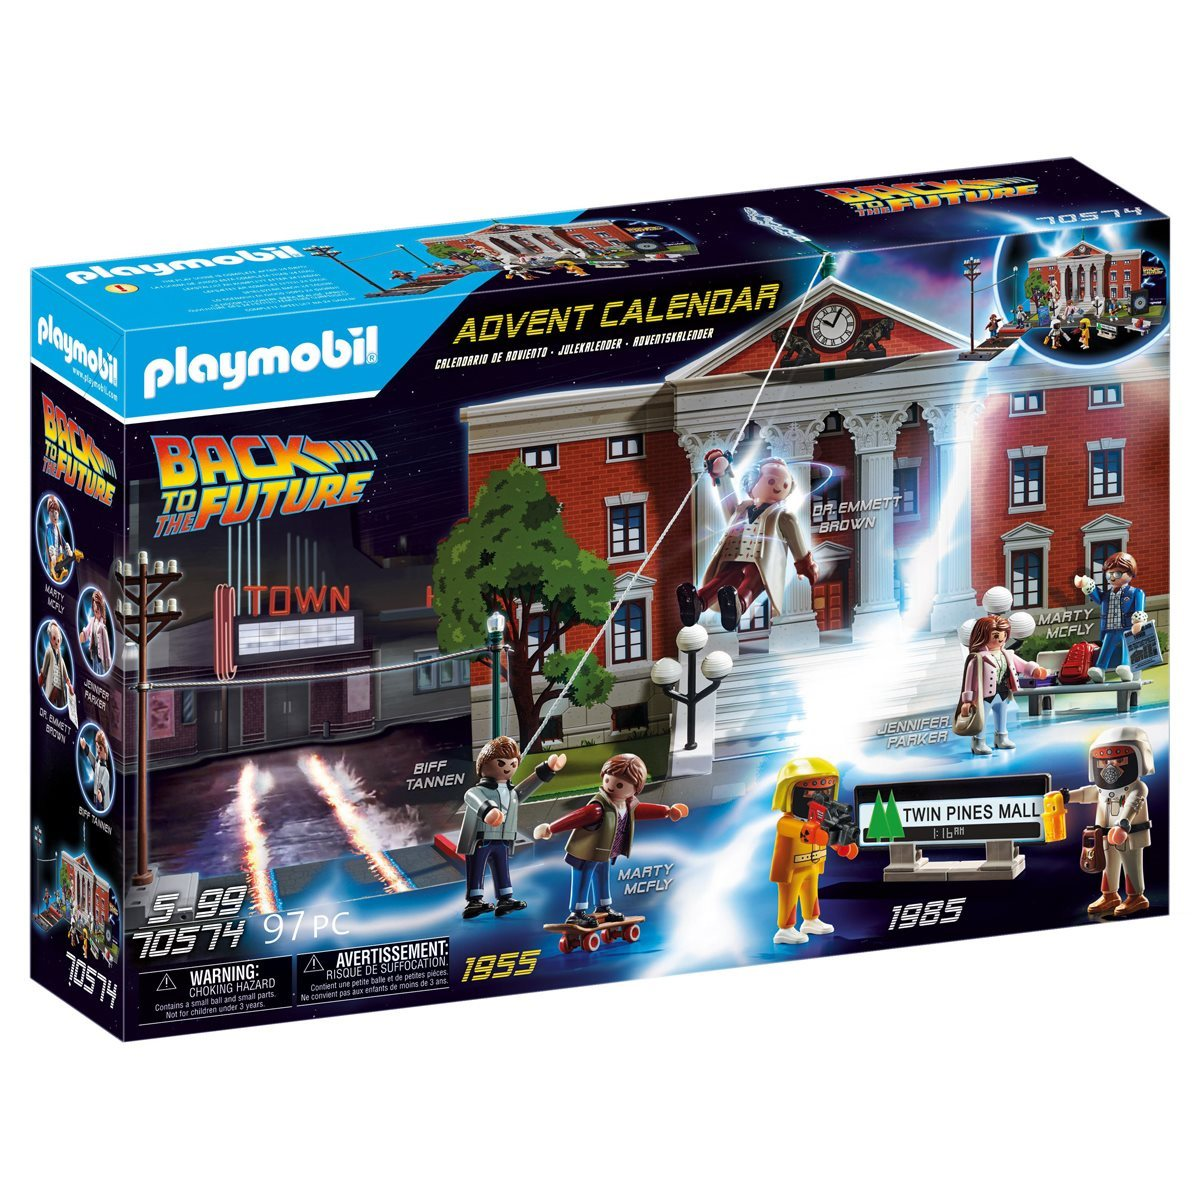 #Playmobil 2020 Back To The Future Advent Calendar Pre-Orders Open Now! - https://hellosubscription.com/2020/08/playmobil-2020-back-to-the-future-advent-calendar-pre-orders-open-now/ … #subscriptionbox #AdventCalendar pic.twitter.com/nplAsk72OZ